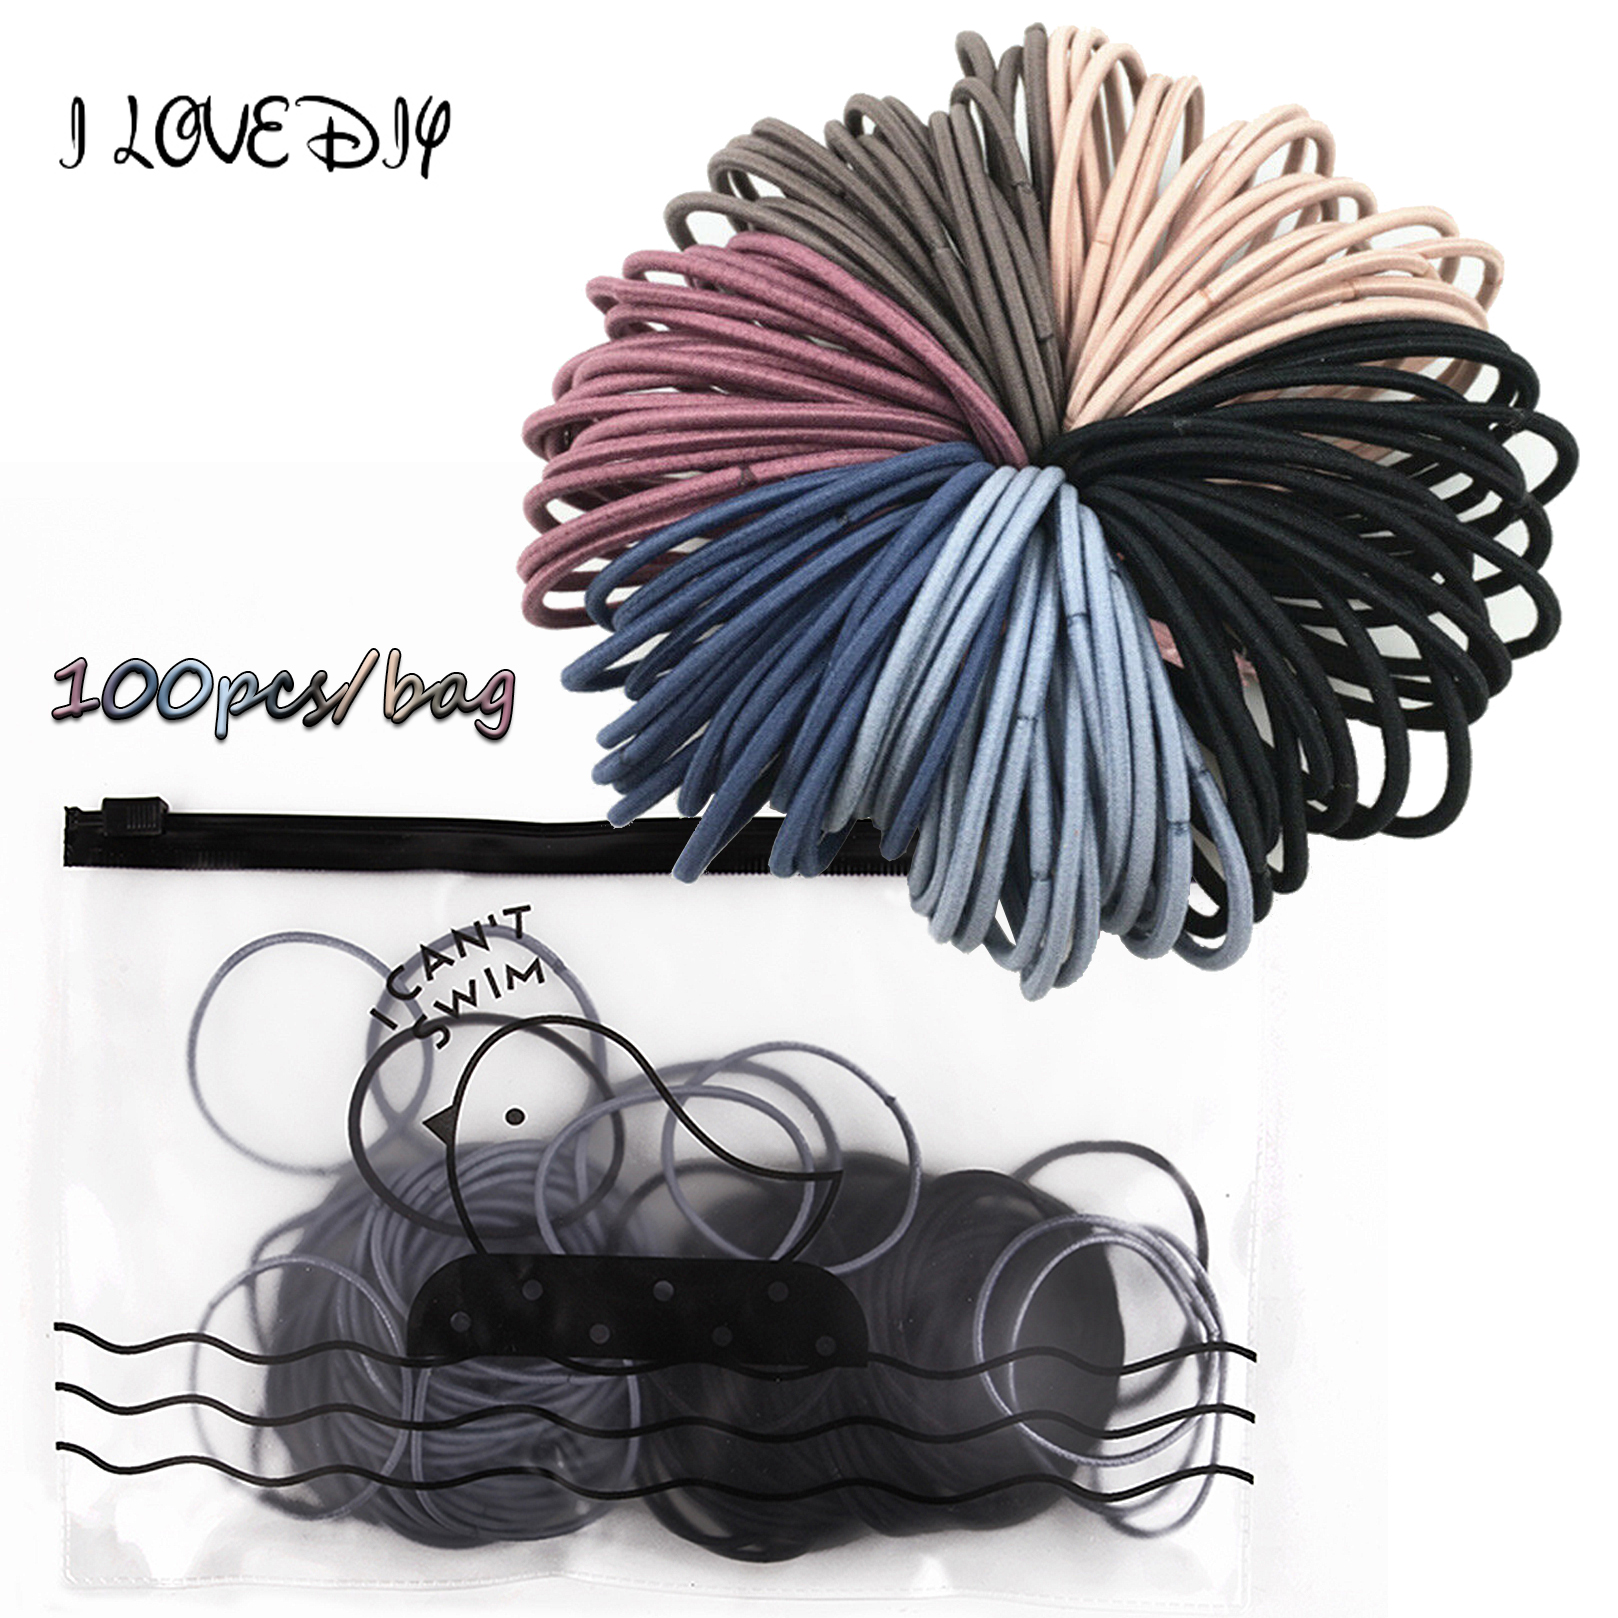 50/ 100pcs With Bag 4.5cm High Elastic Rubber Band Basic Hair Bands Scrunchies Hair Ties Gum Women Girls Ponytail Holders Rope